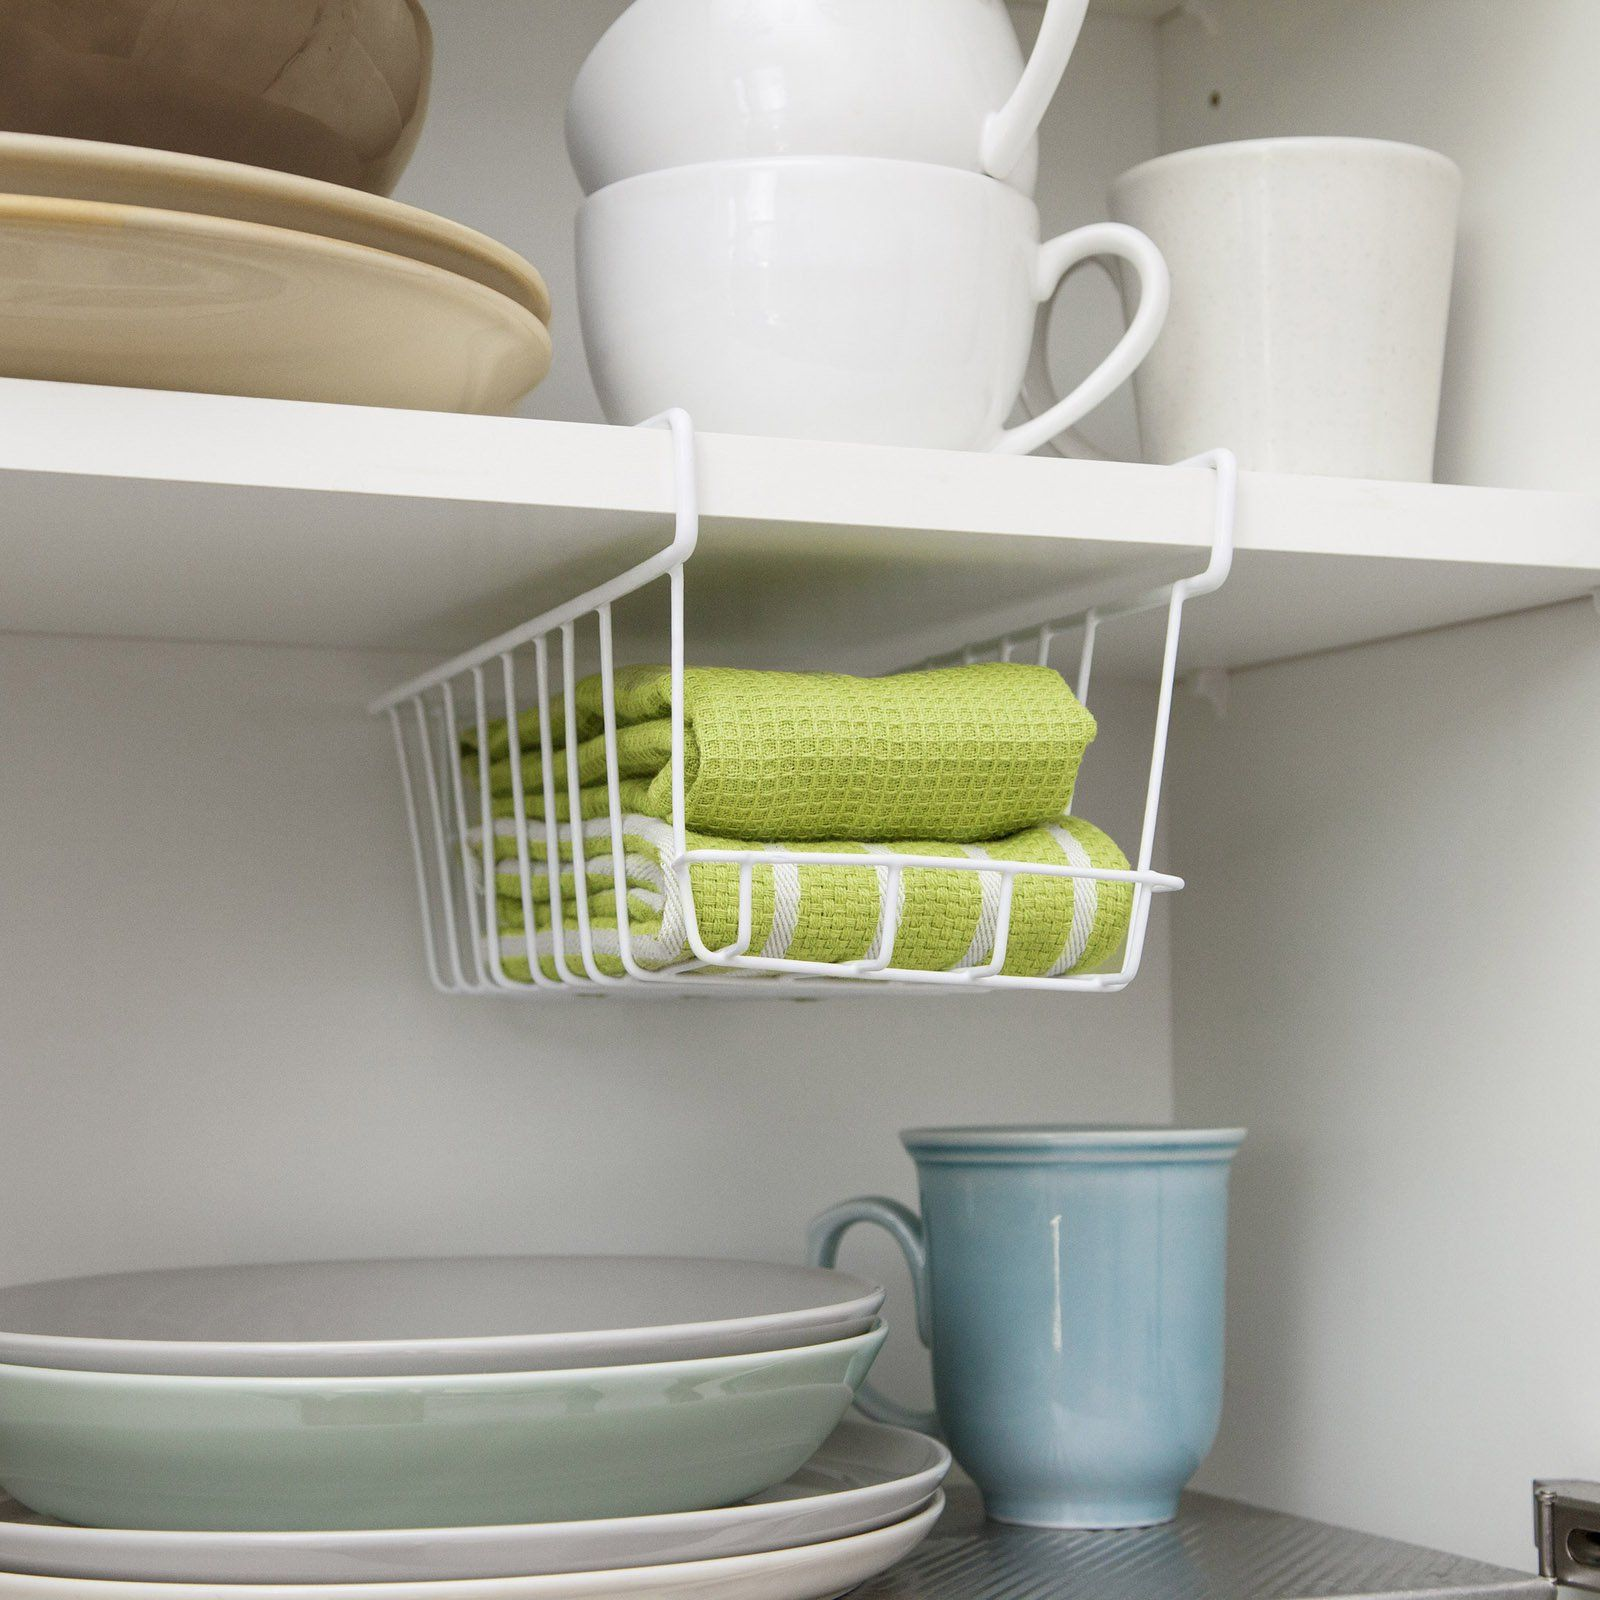 Iris Usa Under Shelf Storage Basket - From Hayneedlecom